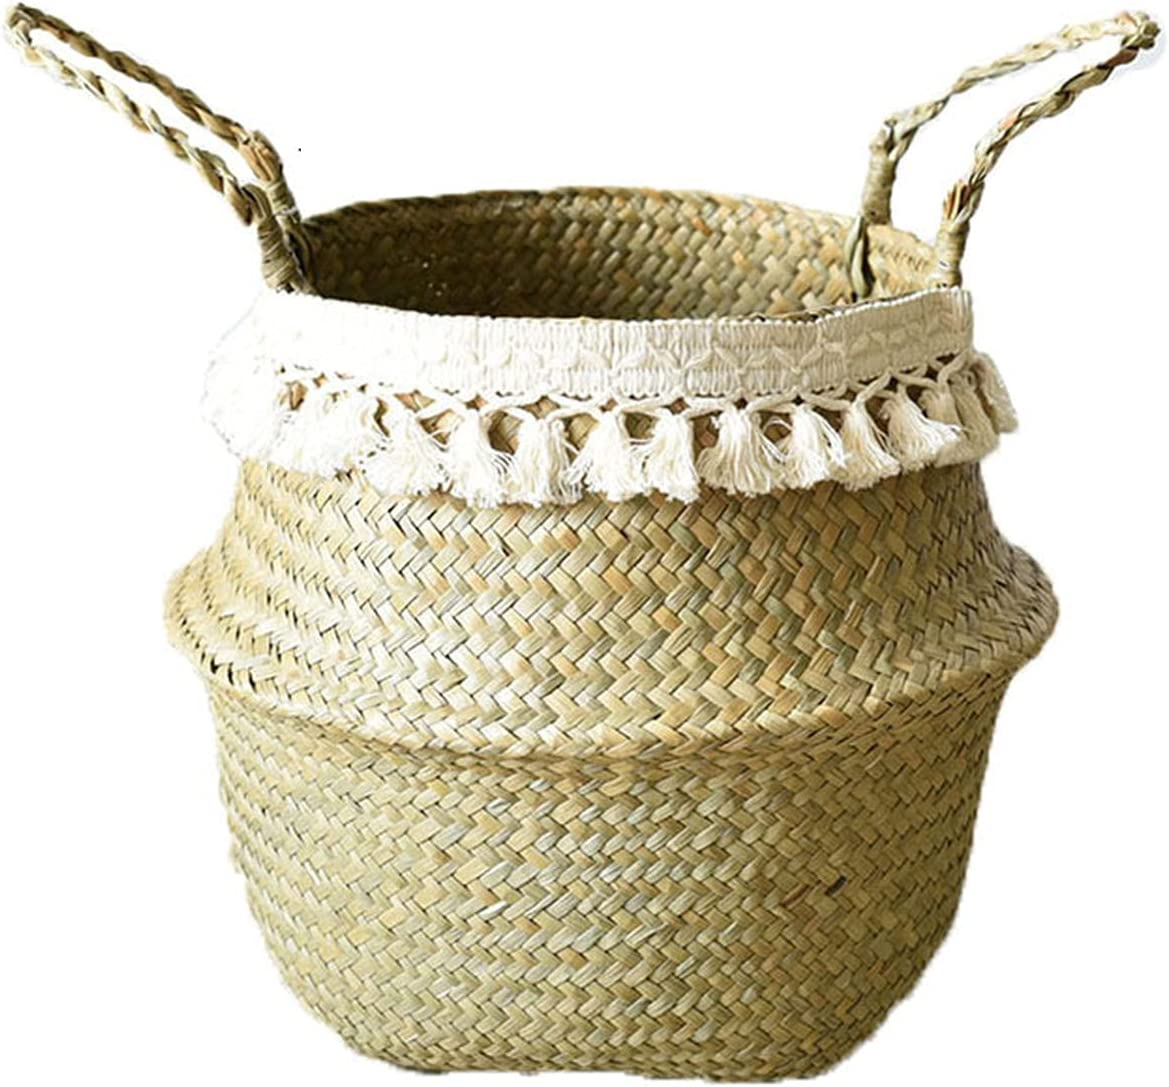 TORBKUI Small Straw Basket Woven Seagrass Kansas City Mall Indianapolis Mall with Belly Hand